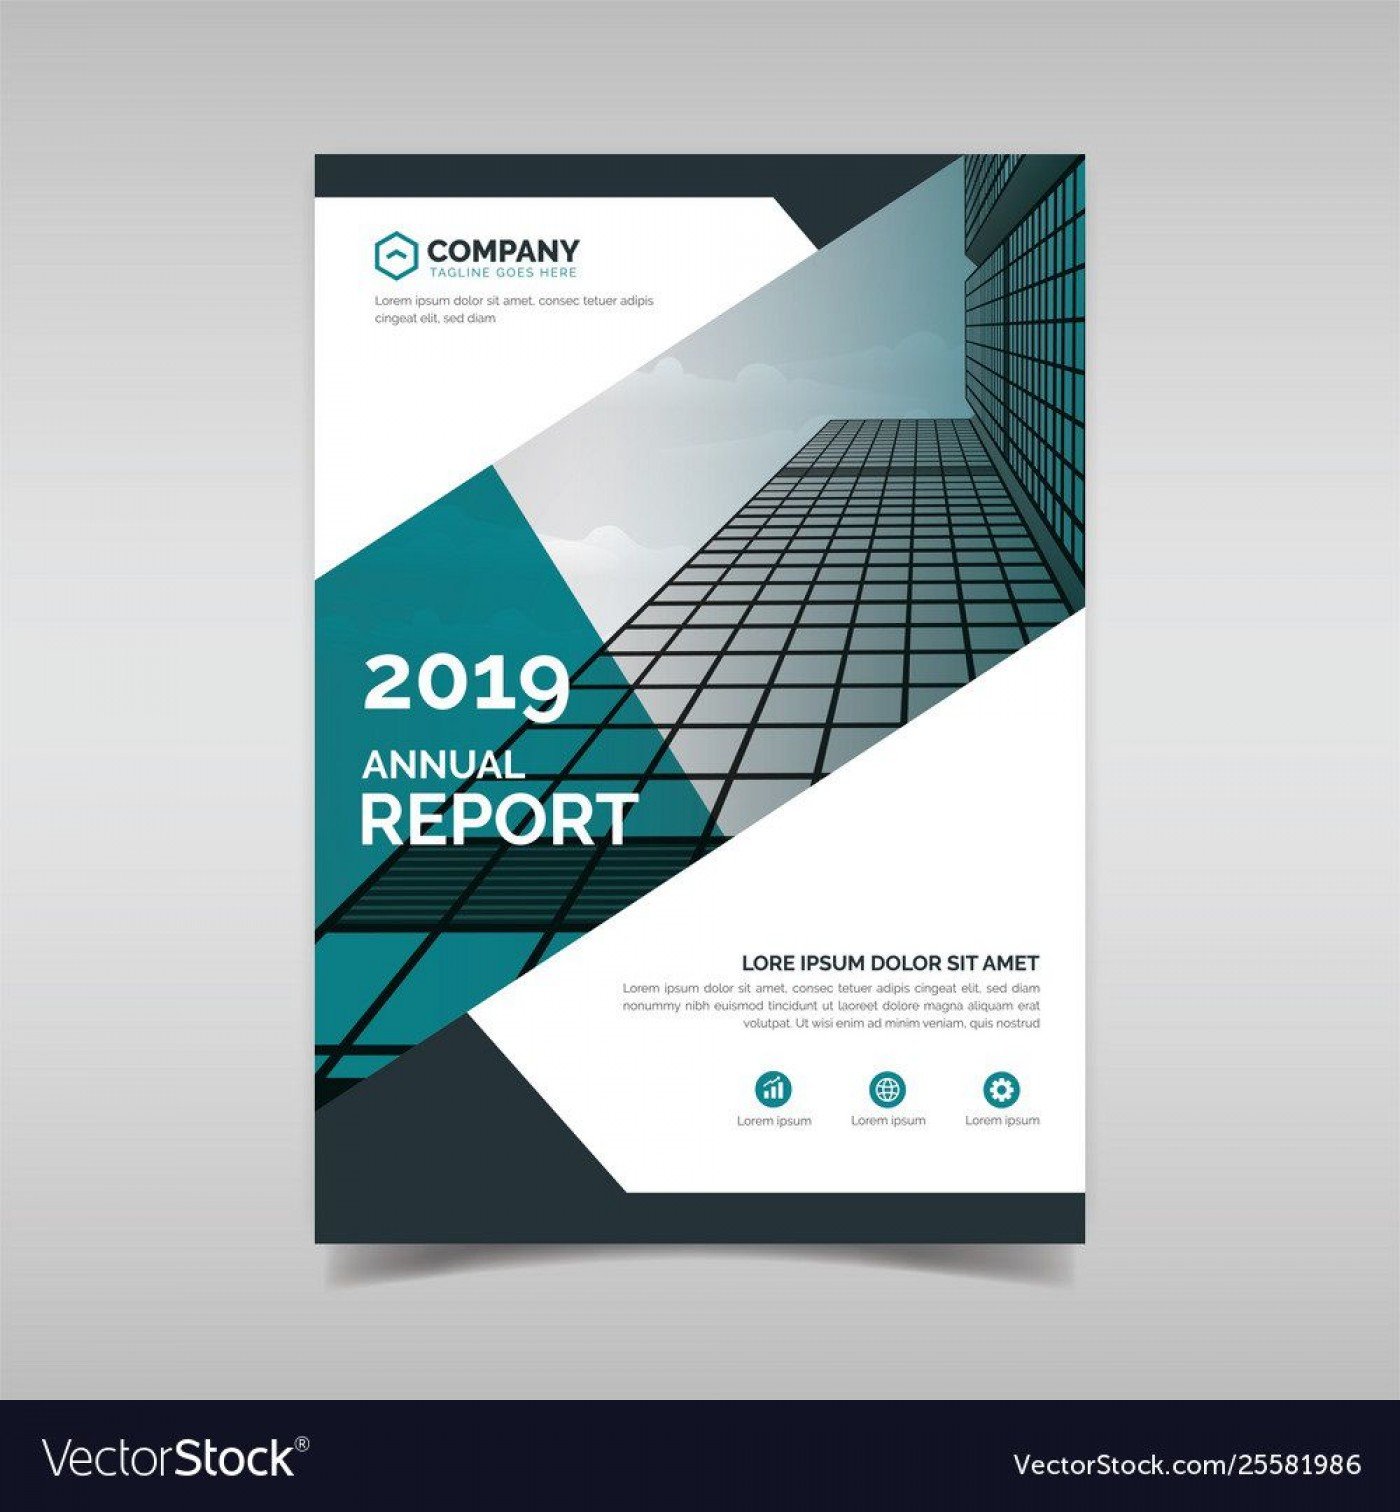 004 Imposing Free Download Annual Report Cover Design Template High Resolution  Indesign In Word1400